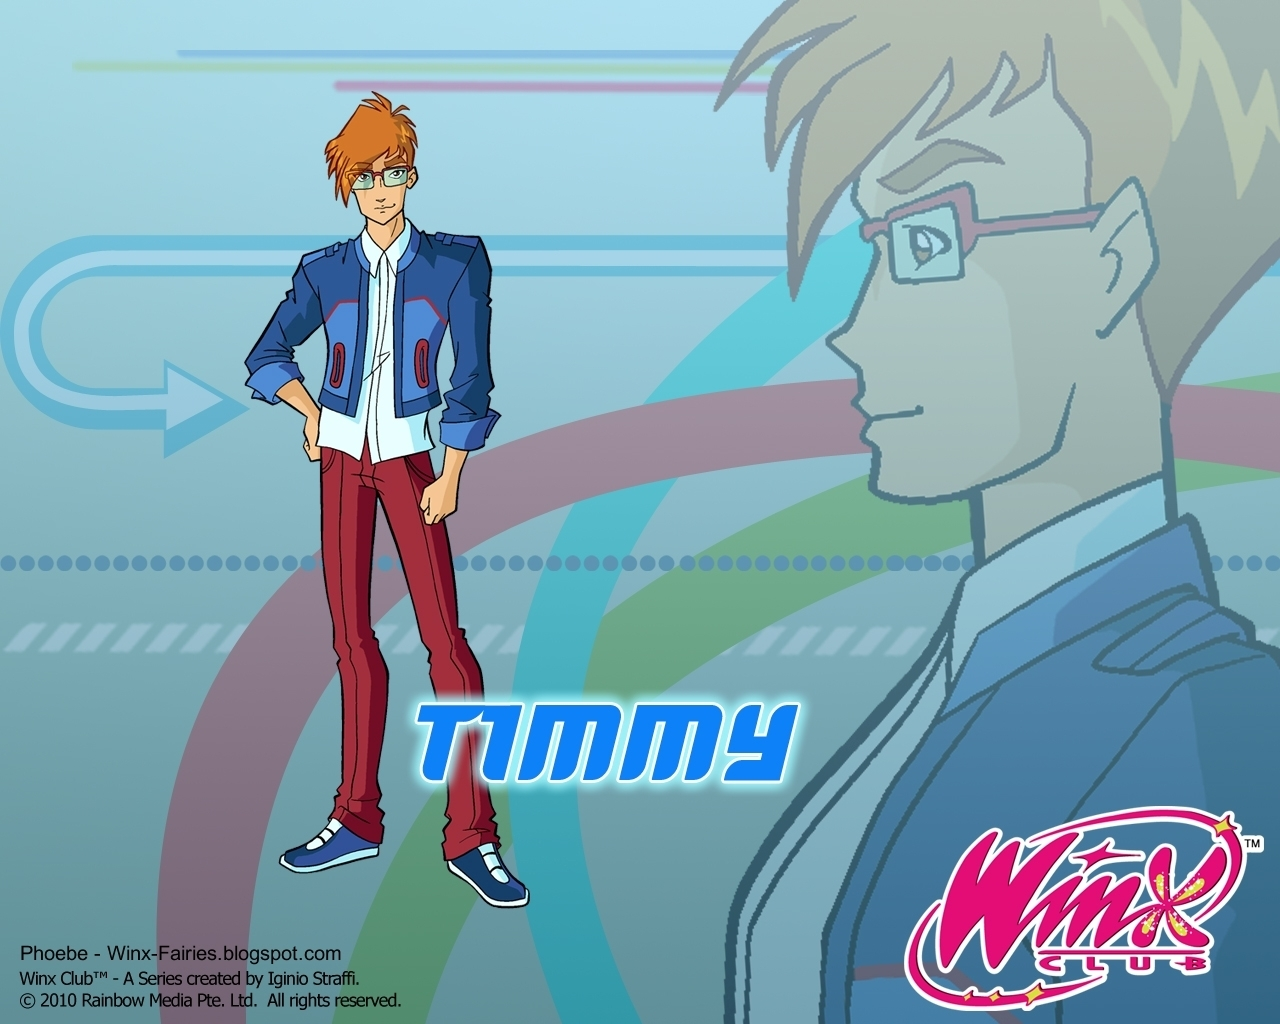 http://images2.fanpop.com/image/photos/13800000/Timmy-the-winx-club-13895684-1280-1024.jpg